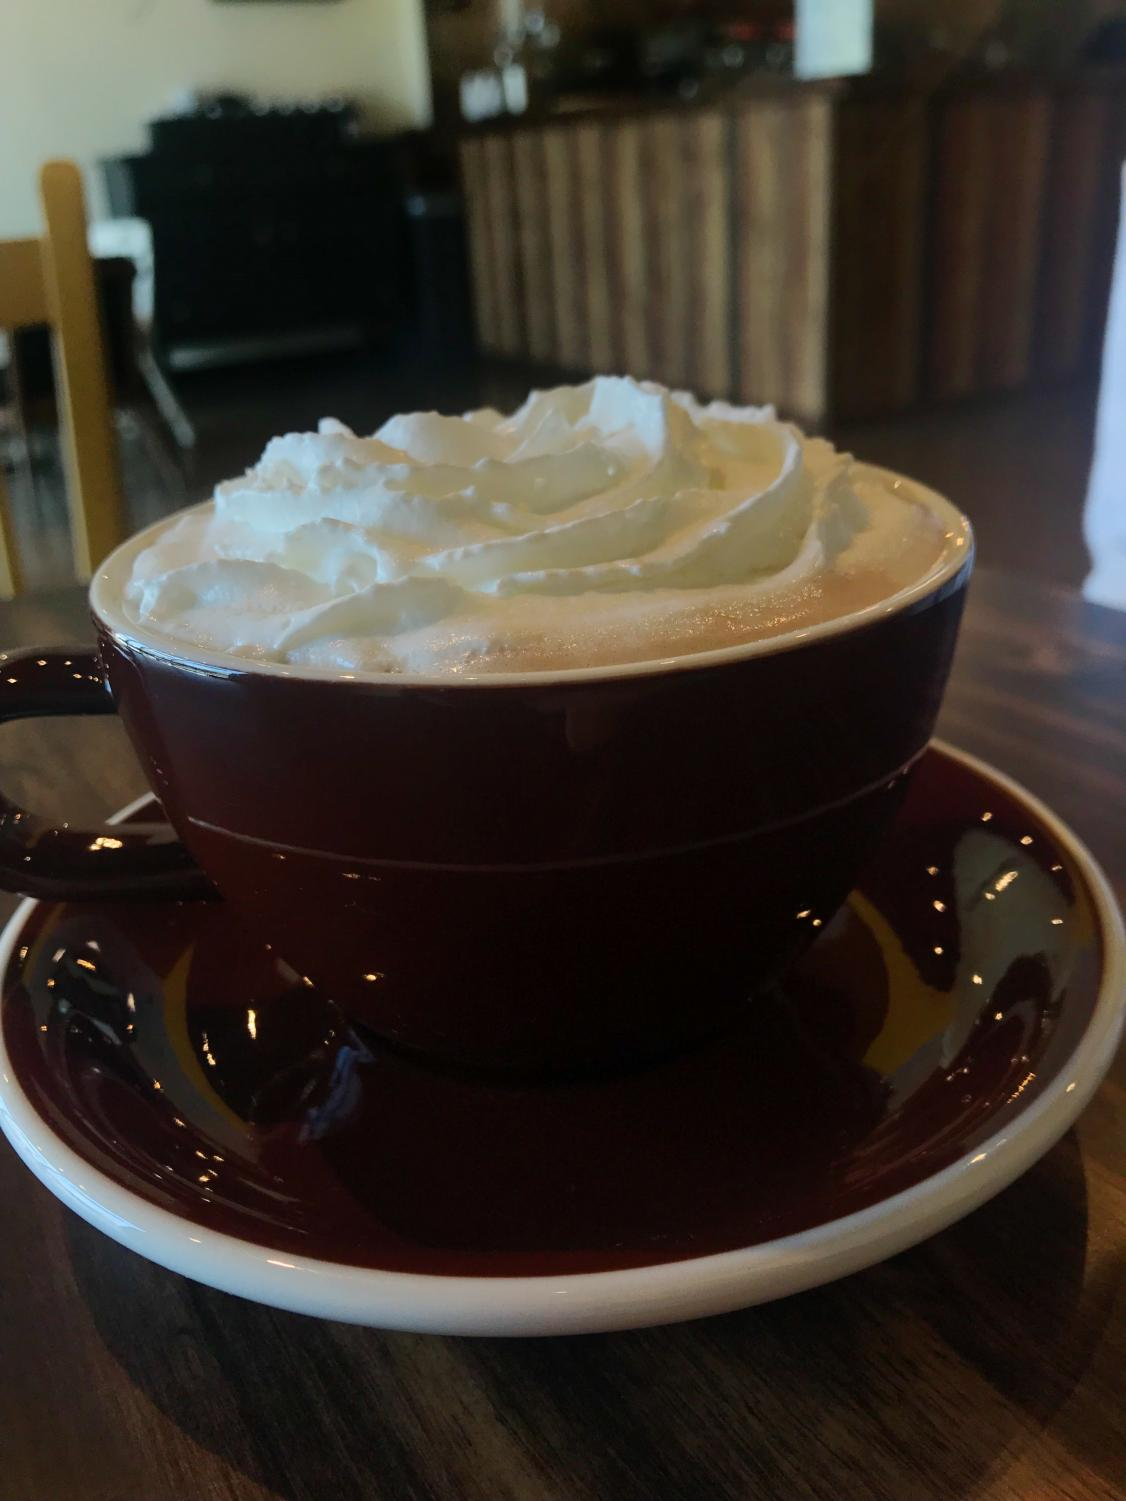 Hot Chocolate from Yogi's Cafe topped with delicious whipped cream